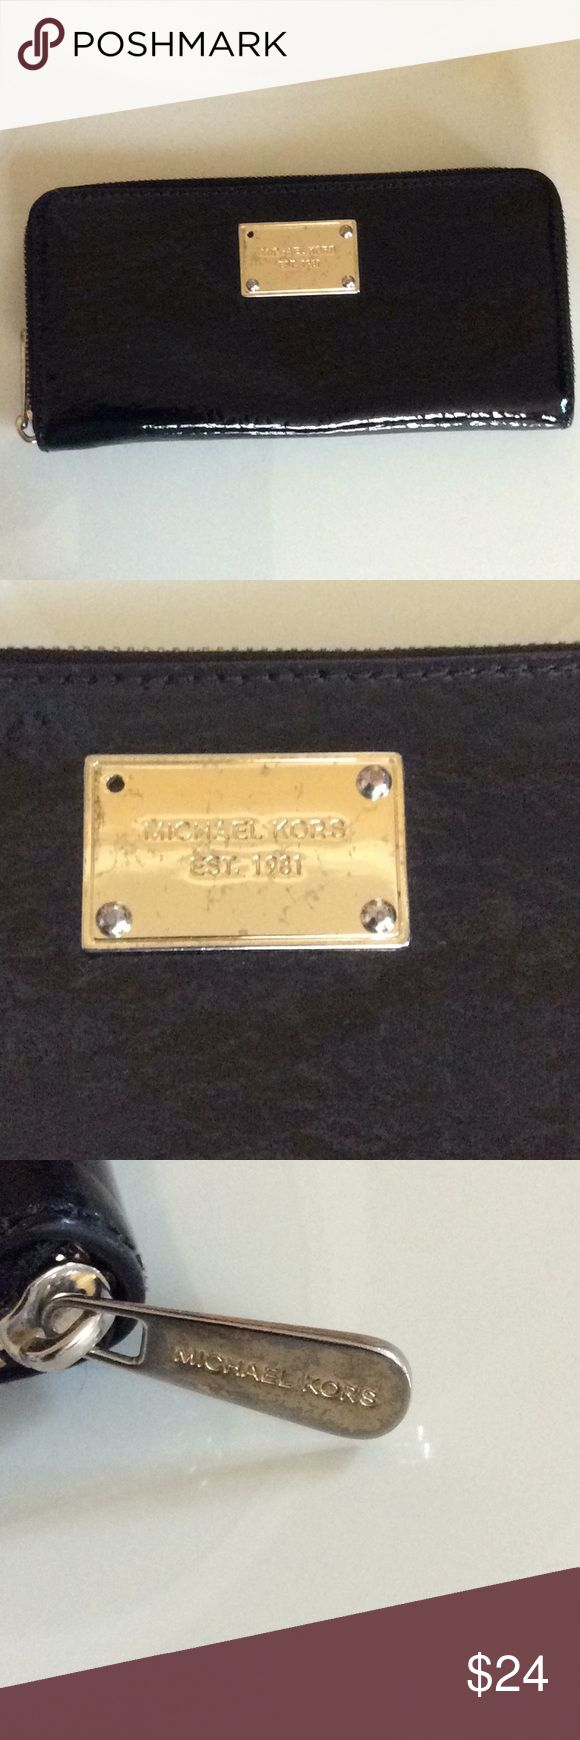 Michael Kors wallet Used Michael Kors wallet. In fair conditions, hardware shows signs of wear- front plate also missing top left screw, there is also a stain on the inside pocket near bottom. Please see picture. Fell free to ask questions or for additional pictures. Due to wear item priced accordingly. MICHAEL Michael Kors Bags